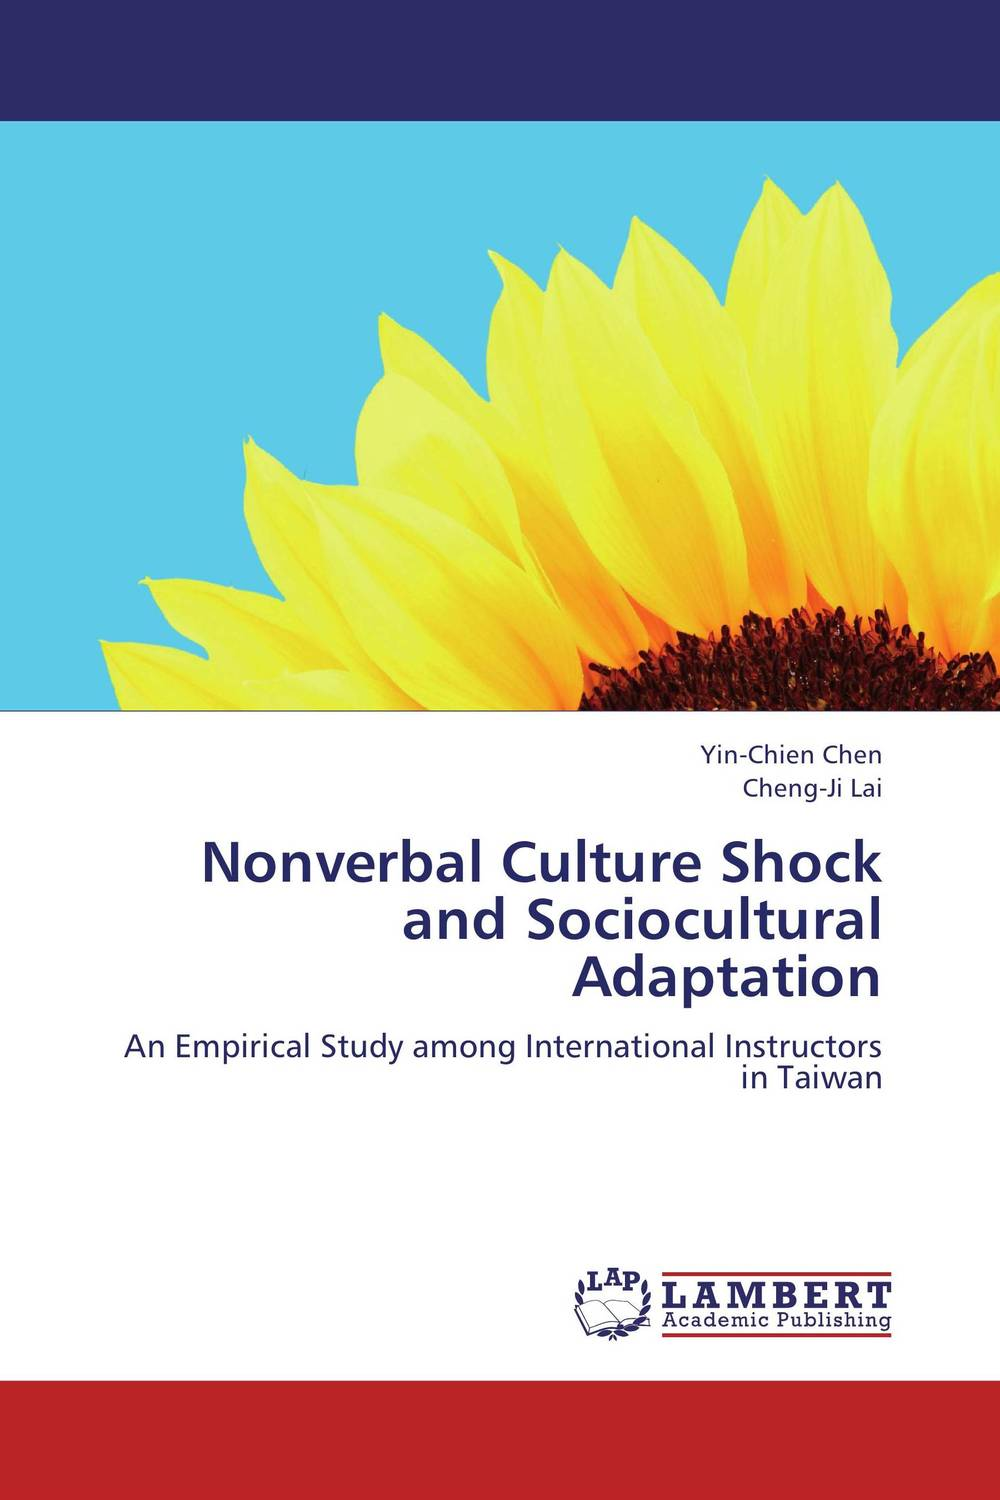 Nonverbal Culture Shock and Sociocultural Adaptation alexander iliashchuk snore or one guy used to have it and now it is gone so it will go away in your case too